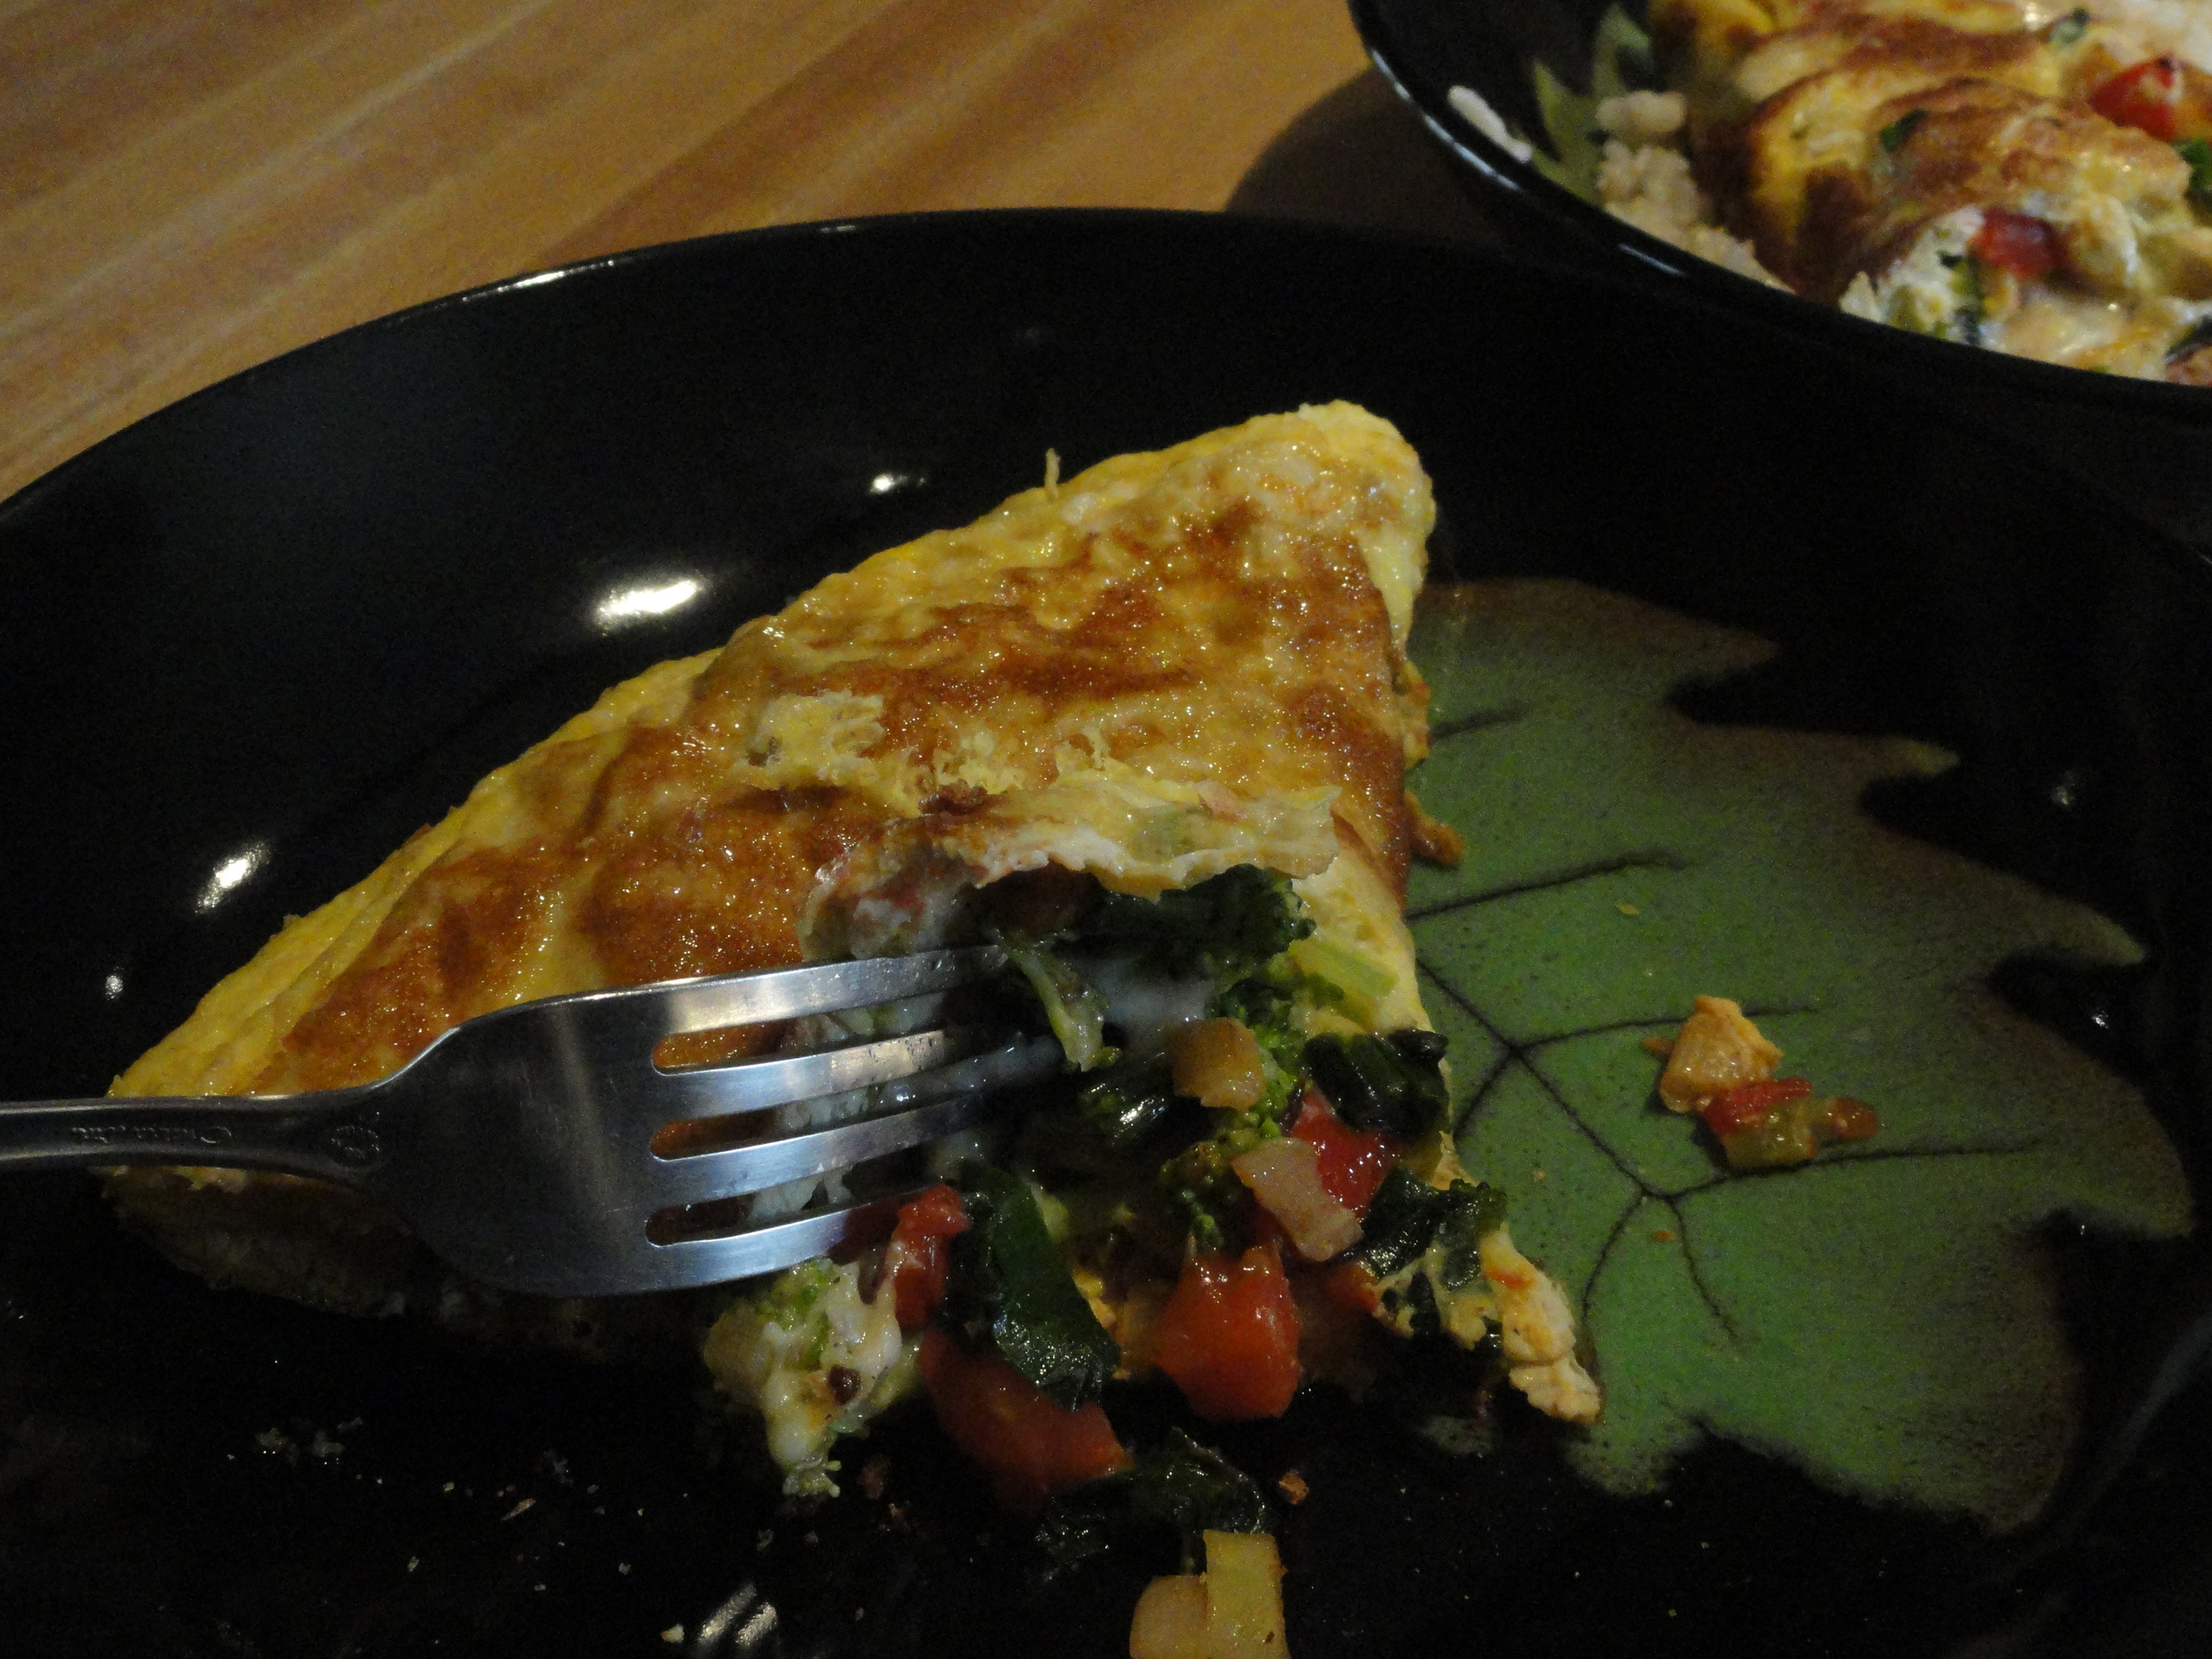 Fortunately, you can put almost anything foraged from the ground into an omelet. Even ramps!